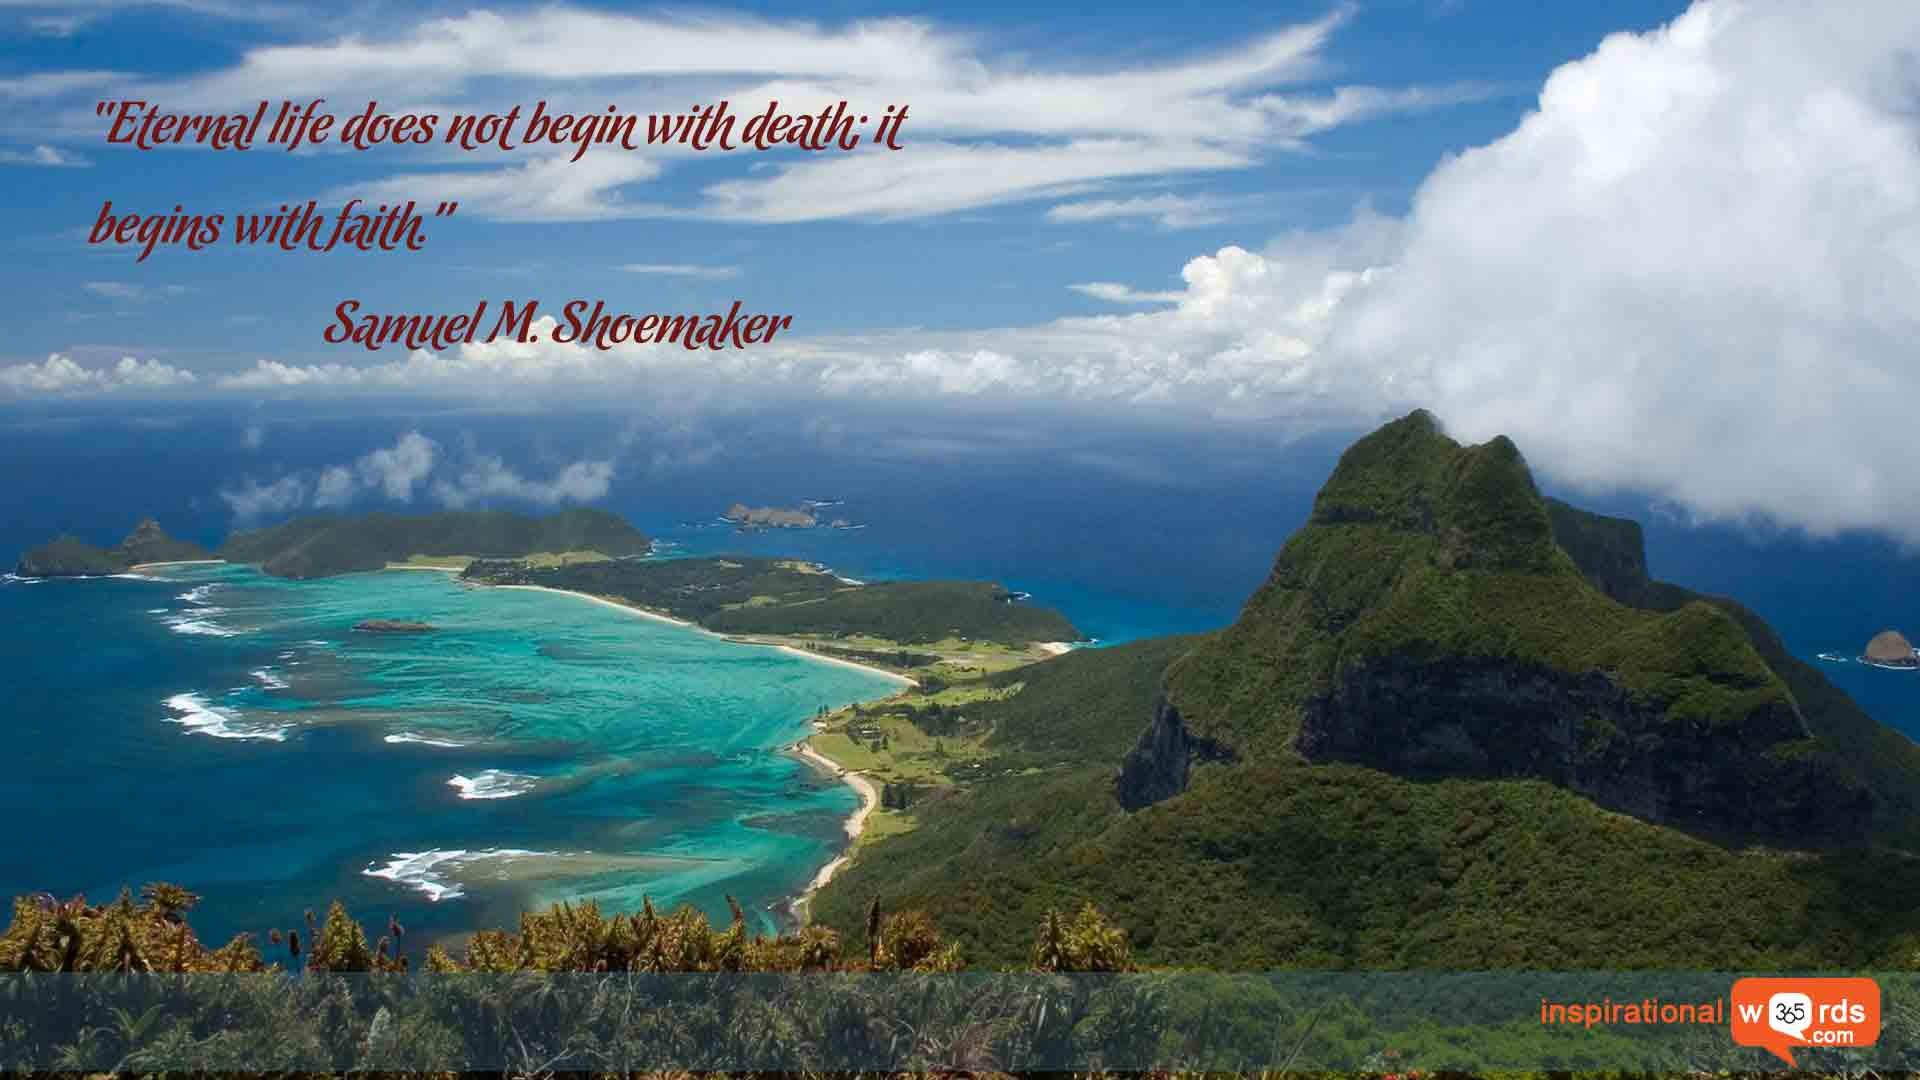 Inspirational Wallpaper Quote by Samuel M. Shoemaker